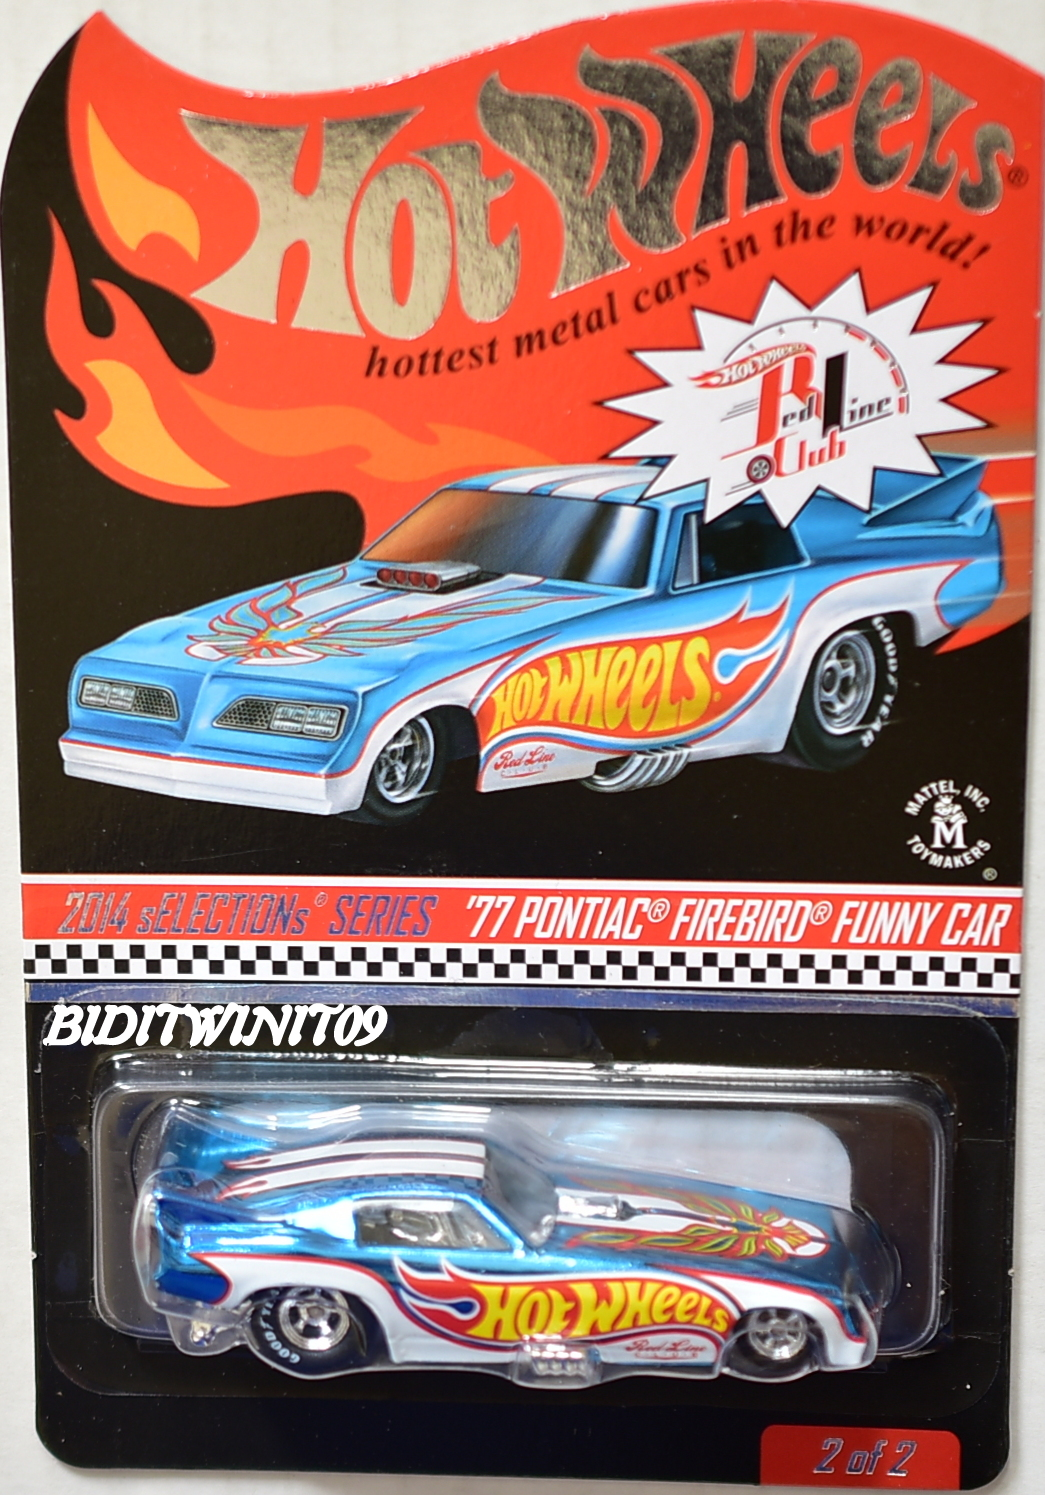 Hot Wheels Rlc 2014 Selections Series 77 Pontiac Firebird